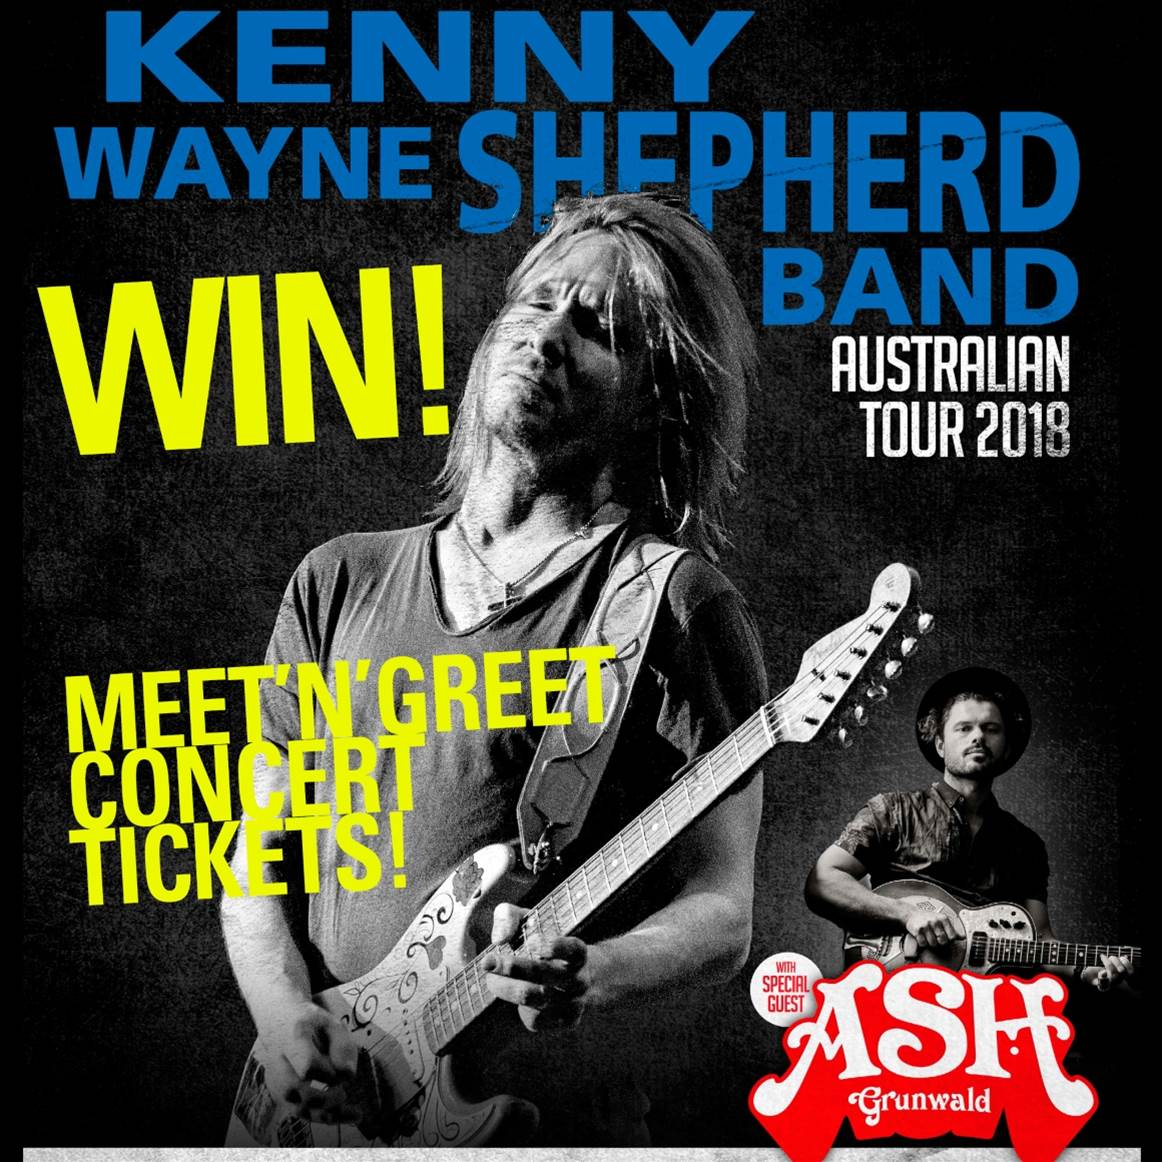 WIN Kenny Wayne Shepherd Band Meet'n'Greet Tickets!